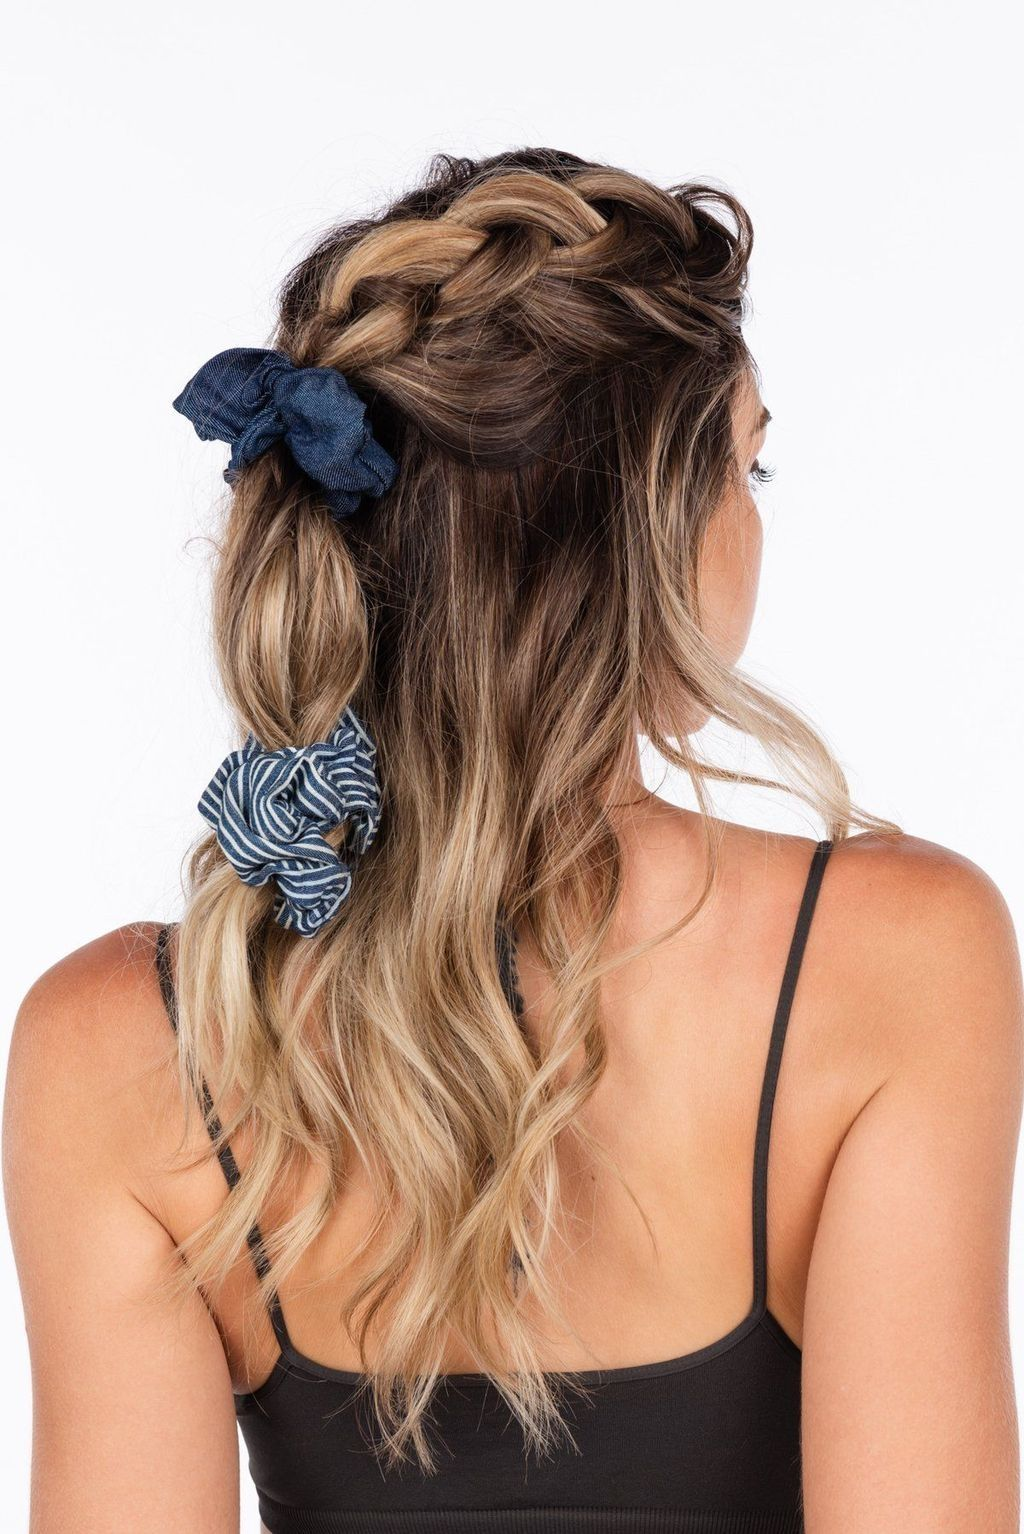 20+ Hottest Hairstyles Summer Trends Ideas For 2019